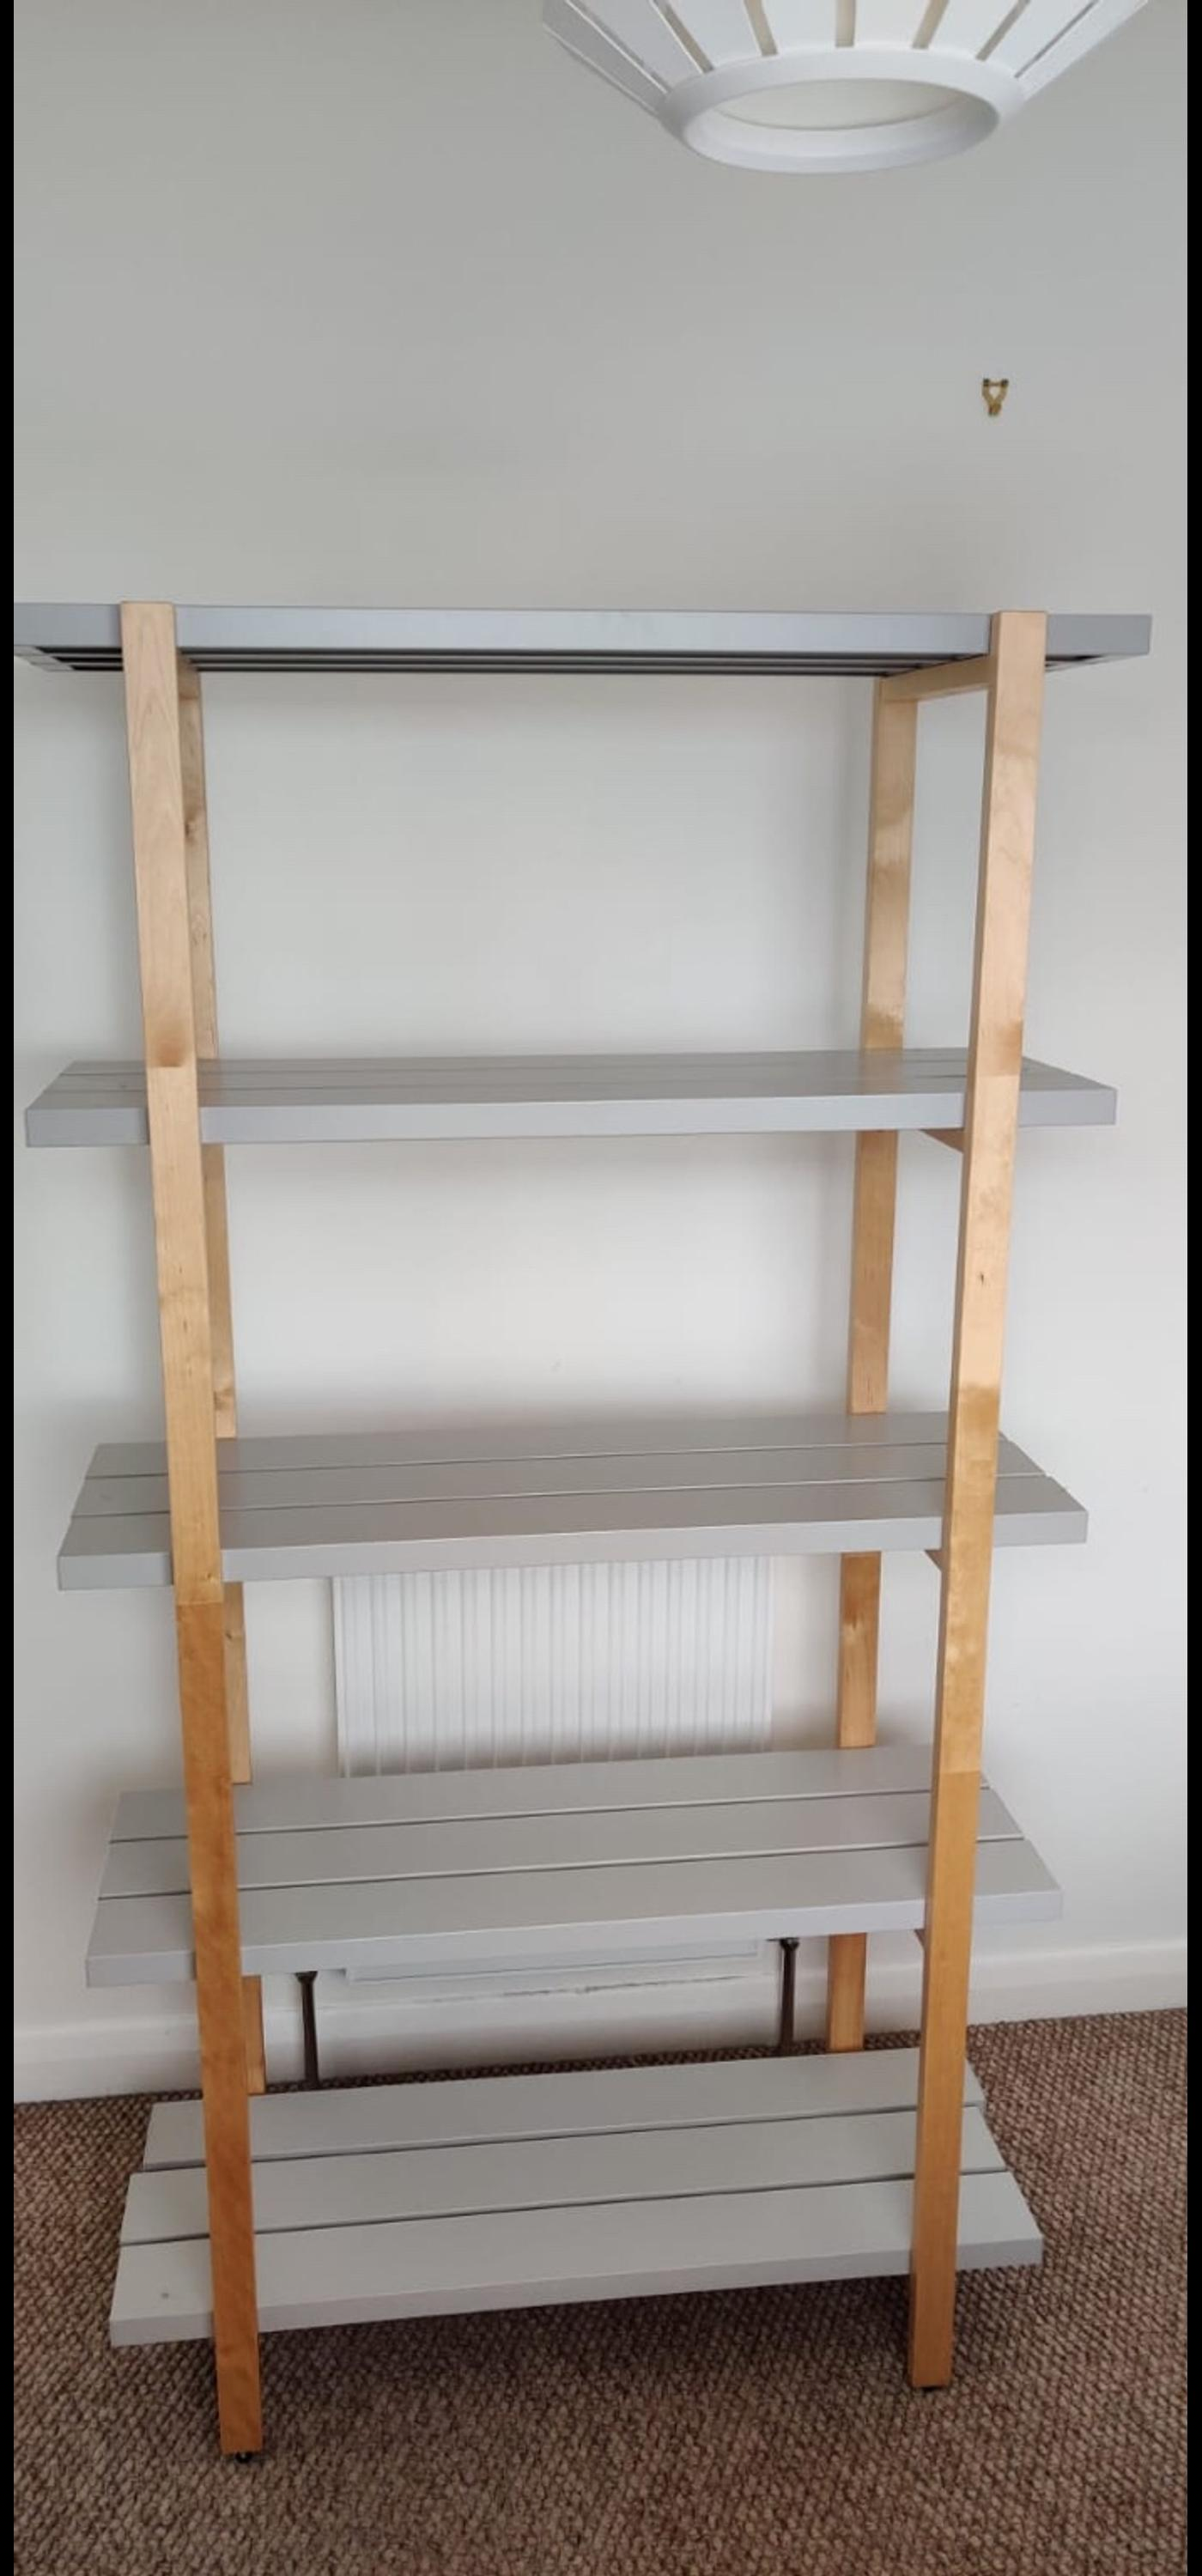 Grey And Wood Ikea Ypperling Shelves In So41 Forest Fur 30 00